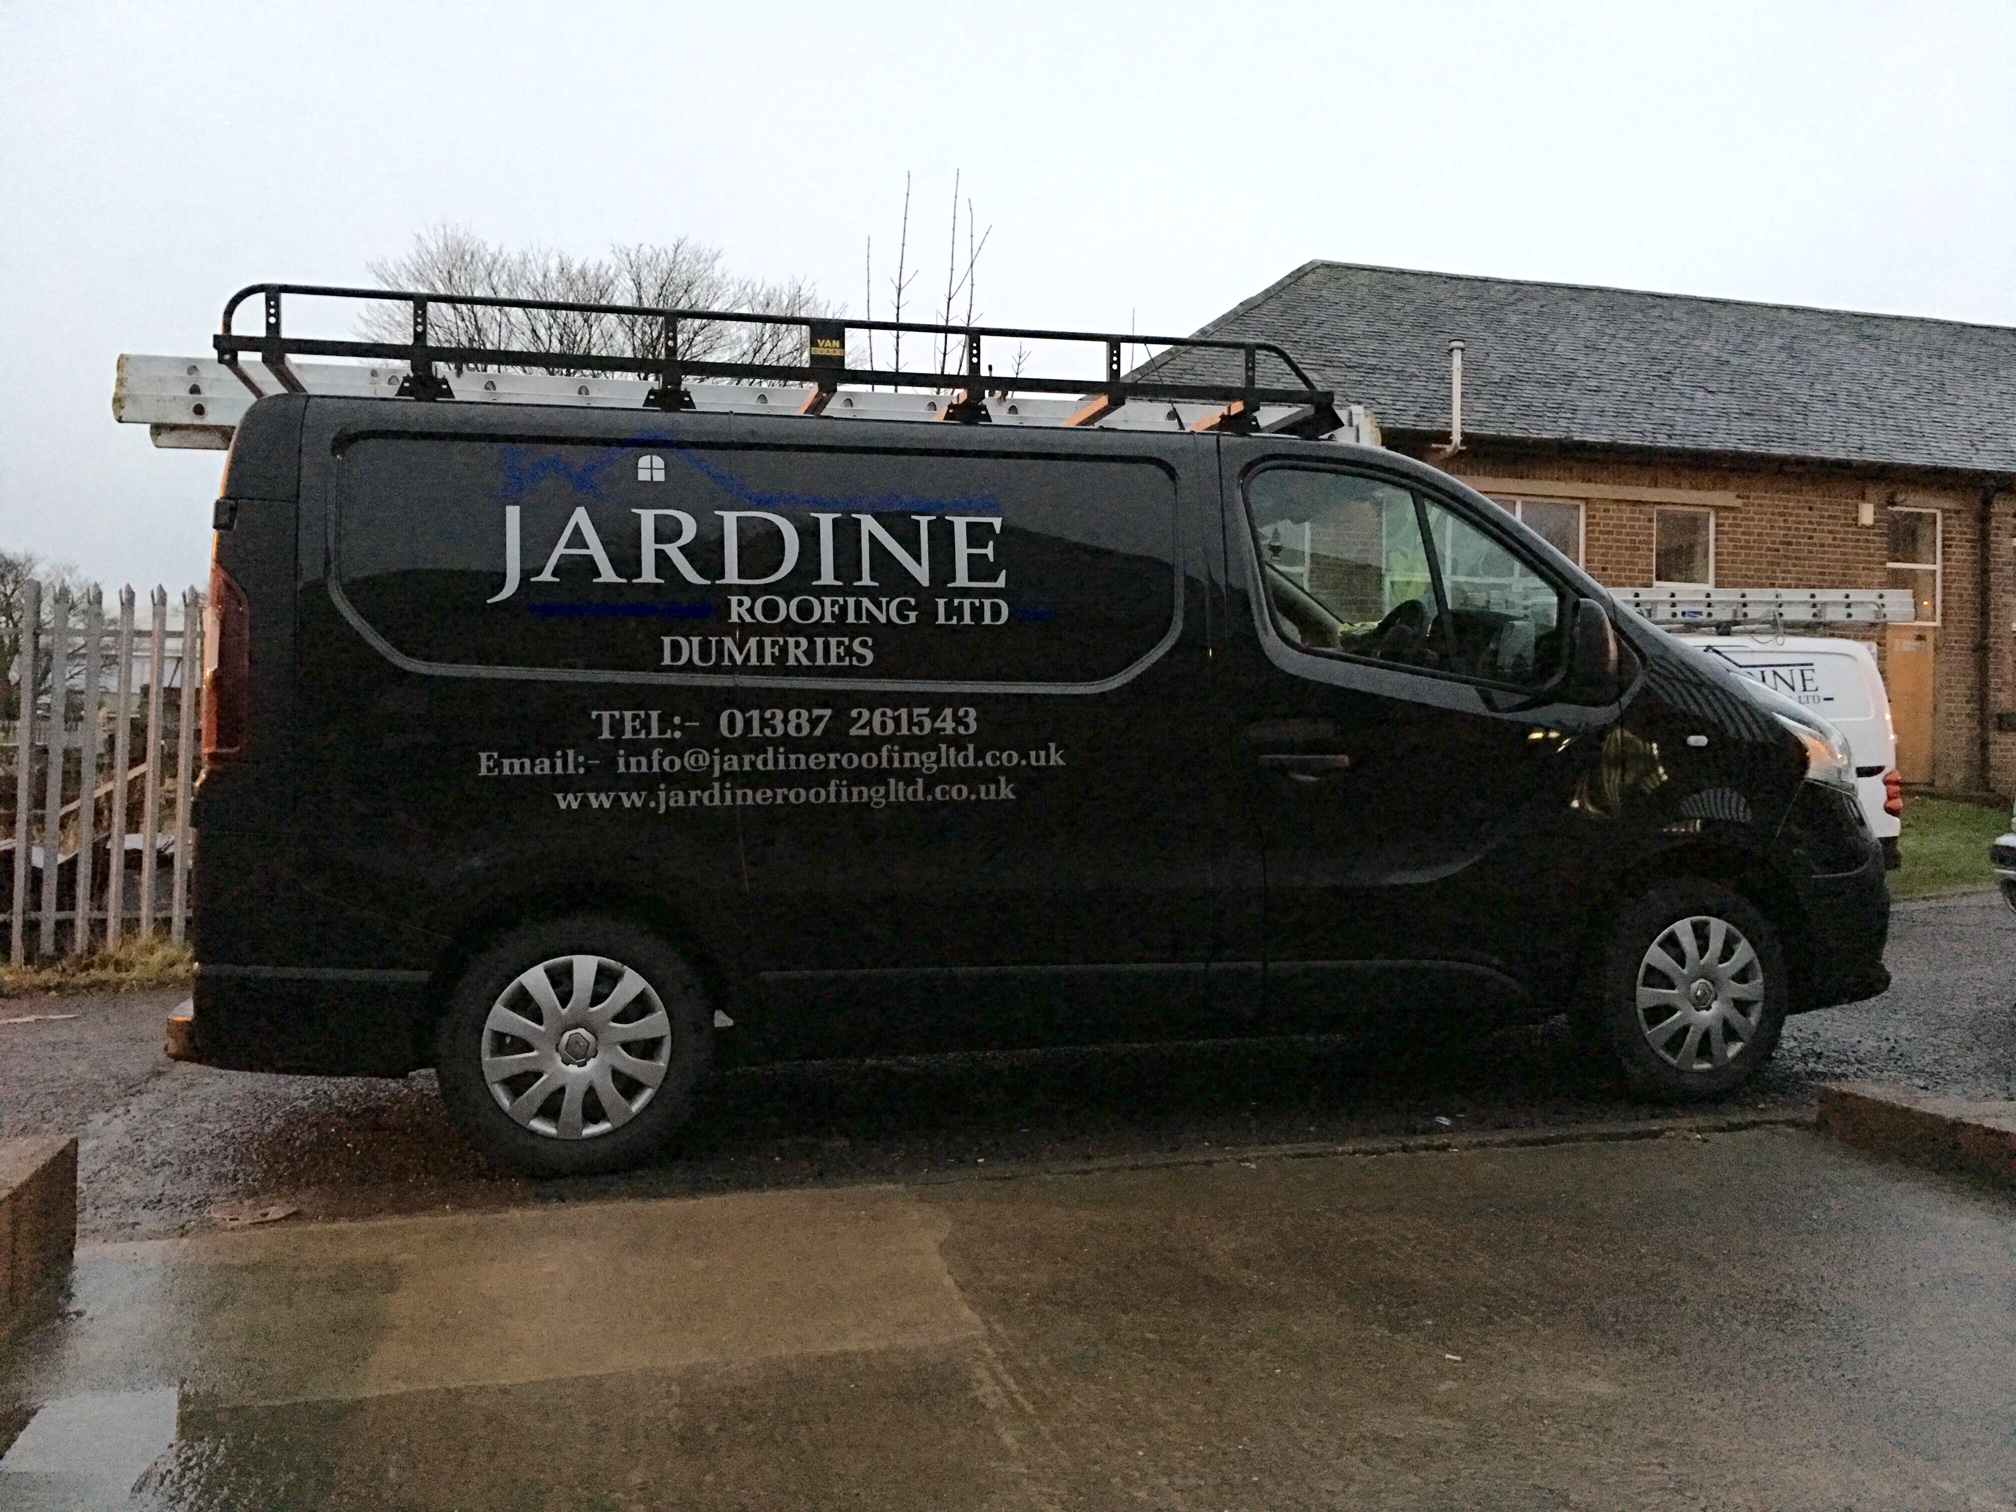 Jardine Roofing Ltd Dumfries